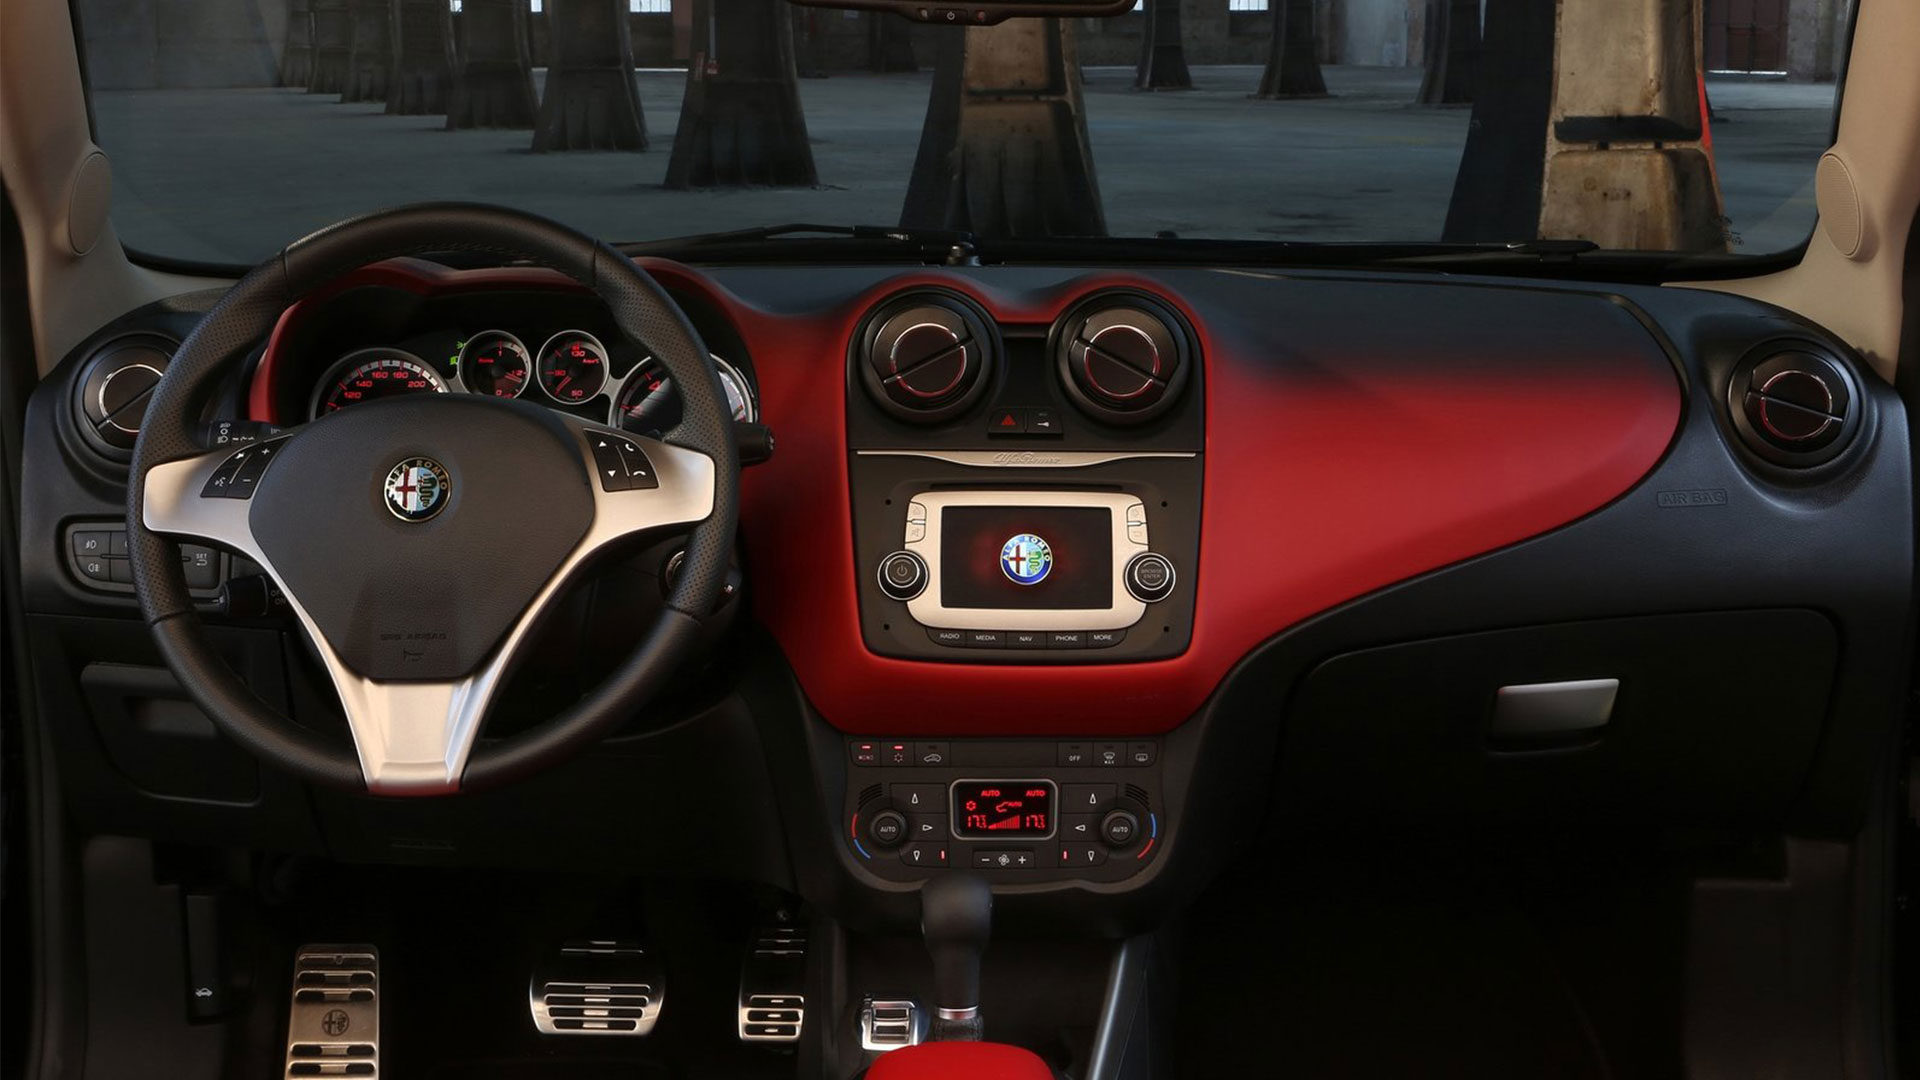 astounding-design-of-the-red-and-black-dash-ideas-with-black-and-silver-steering-wheels-ideas-as-the-alfa-romeo-giulia-2016-interior